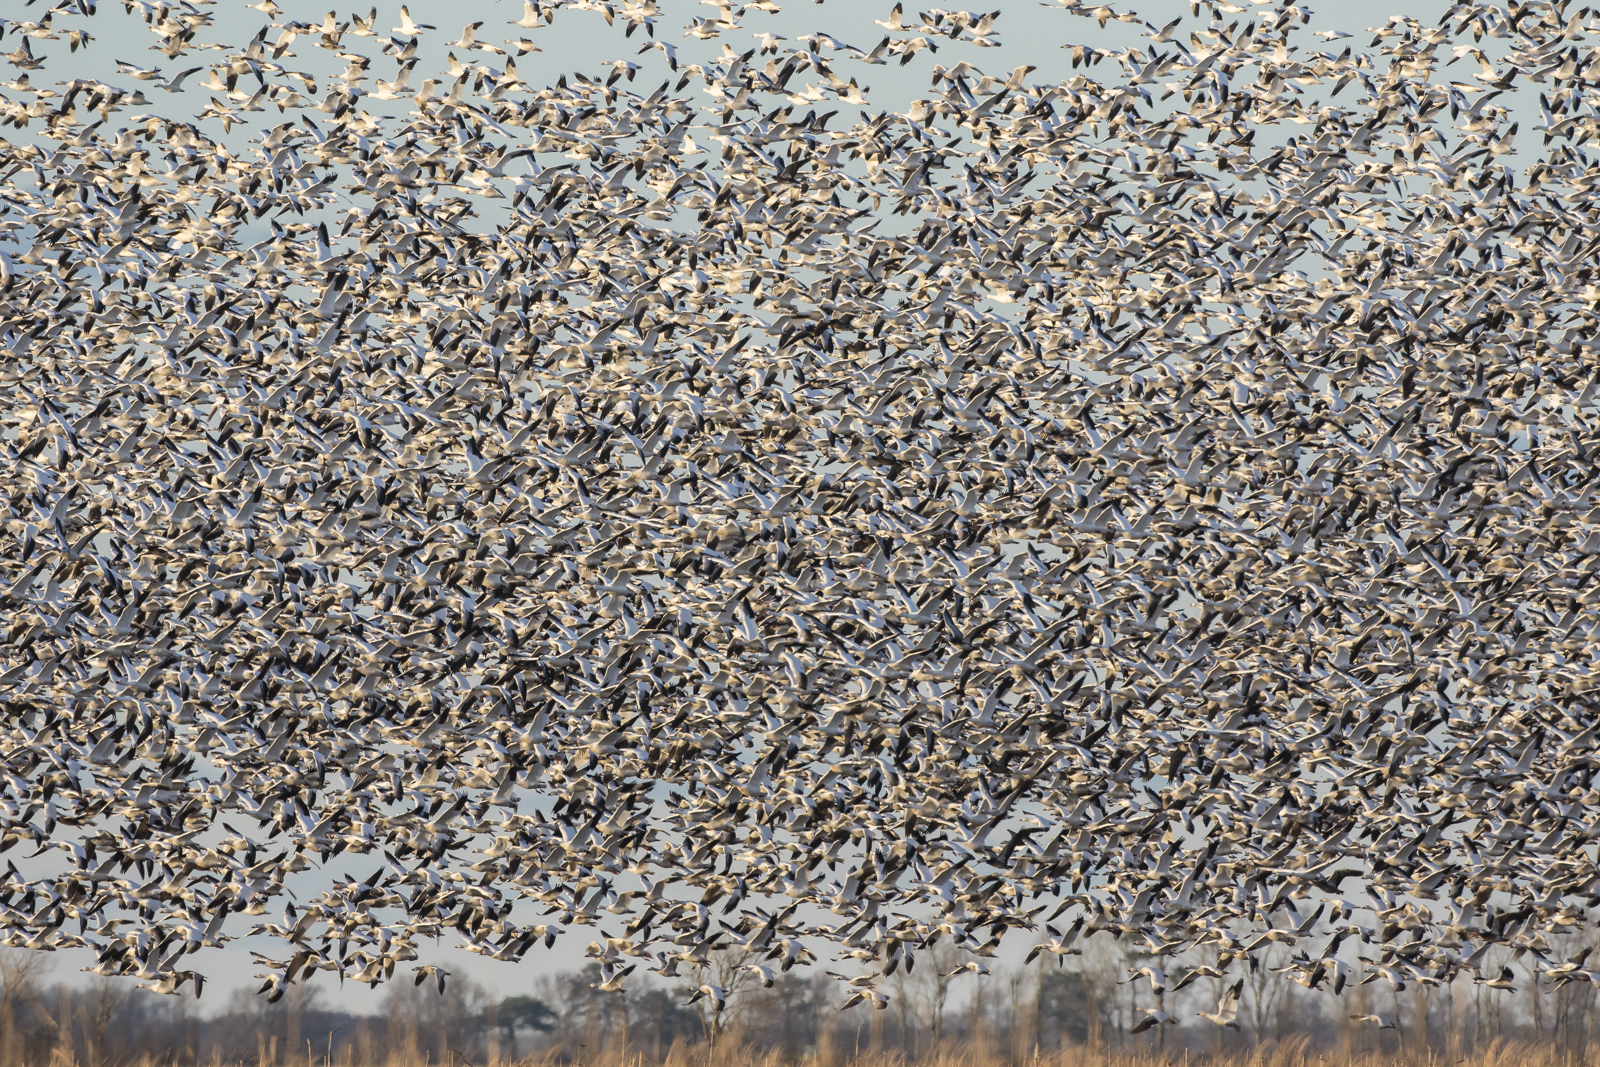 snow geese over field 2